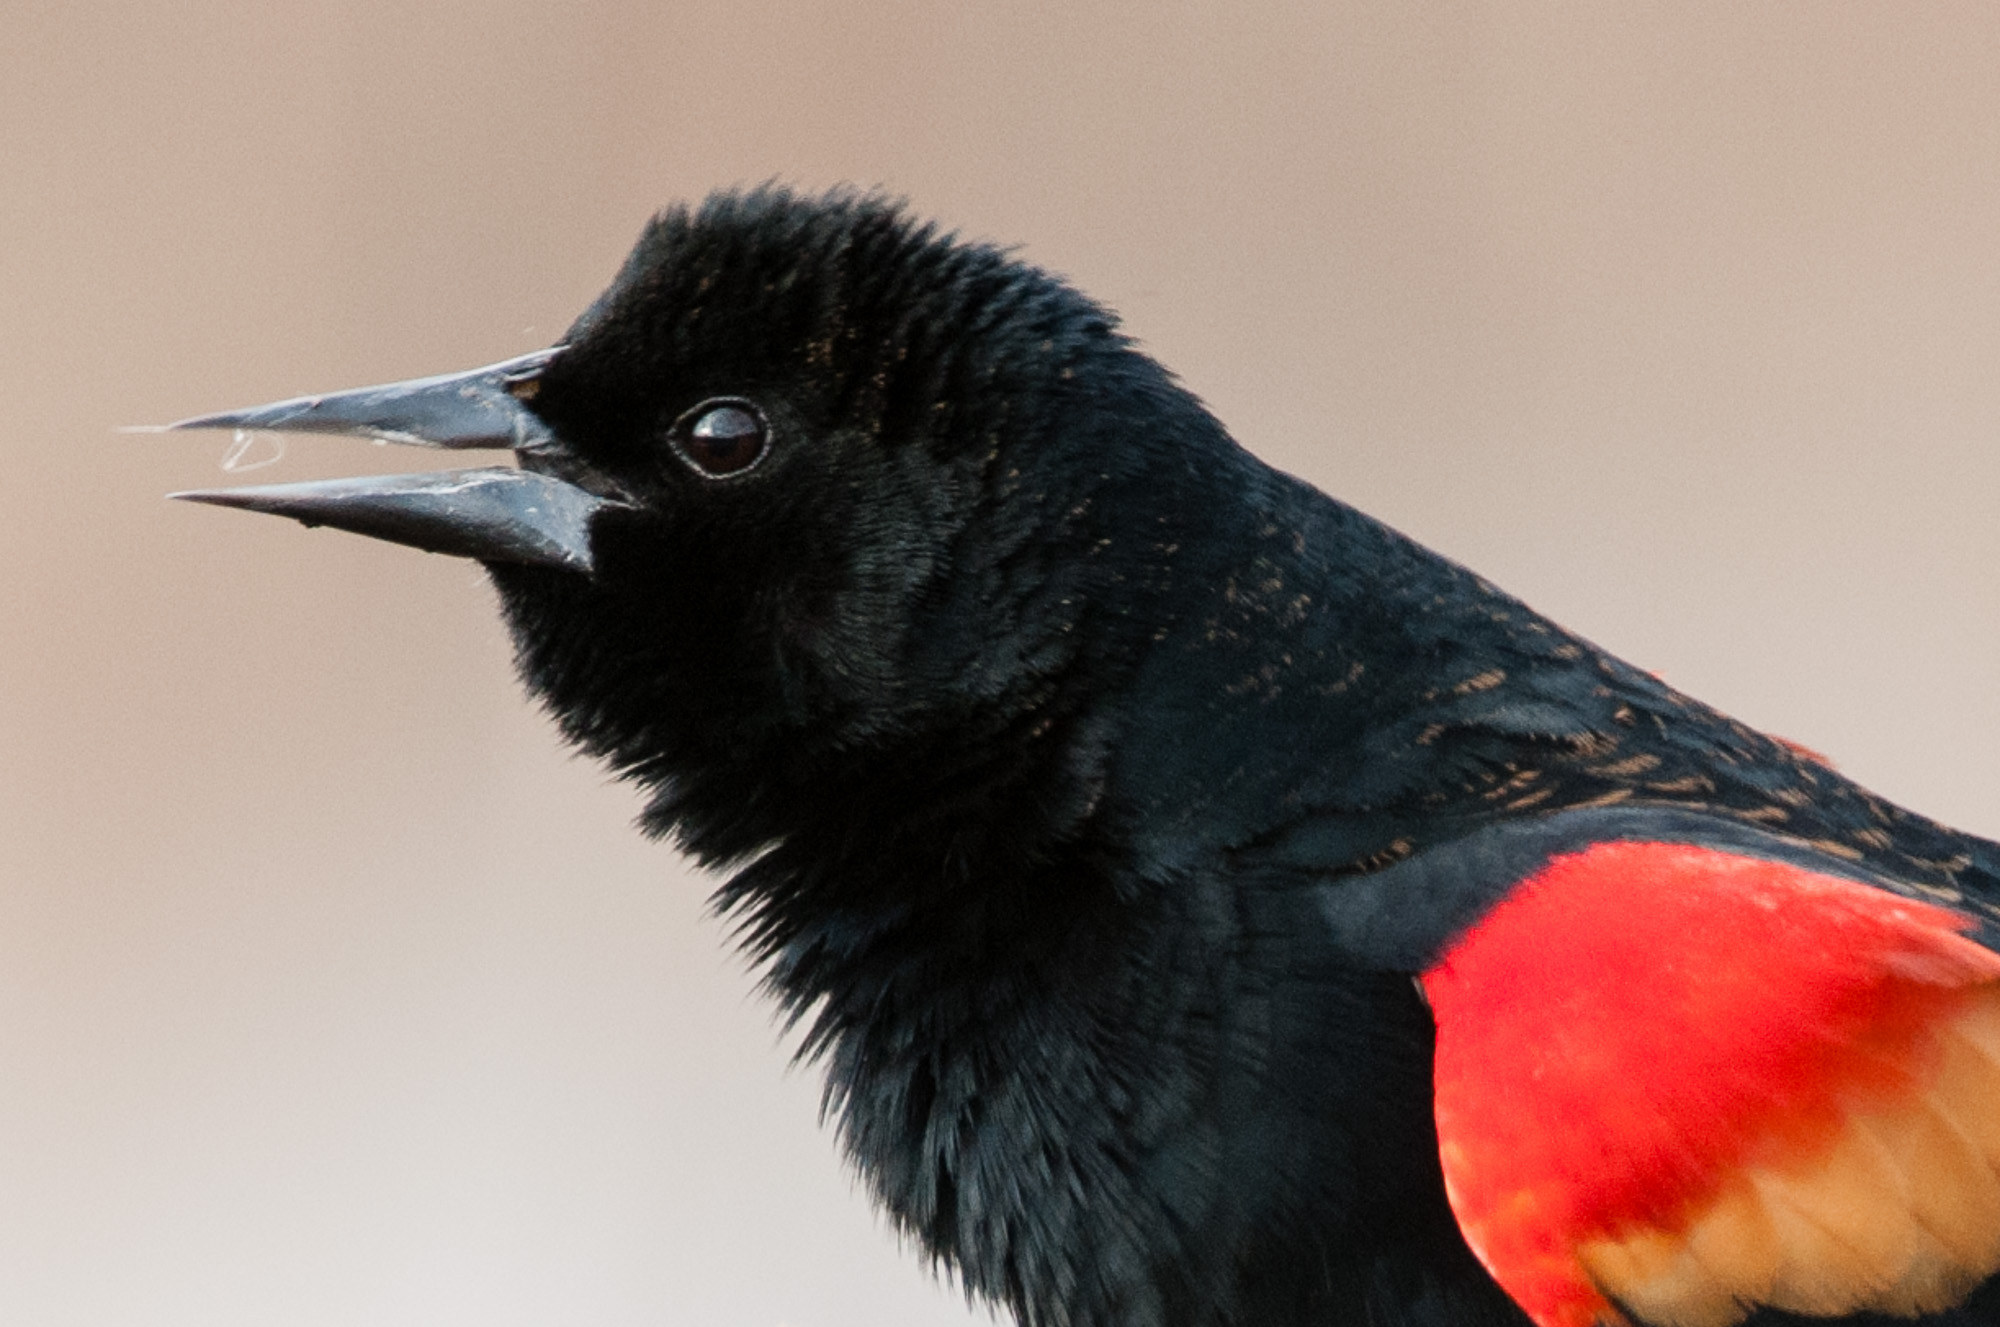 Male red-winged blackbird with eye open.